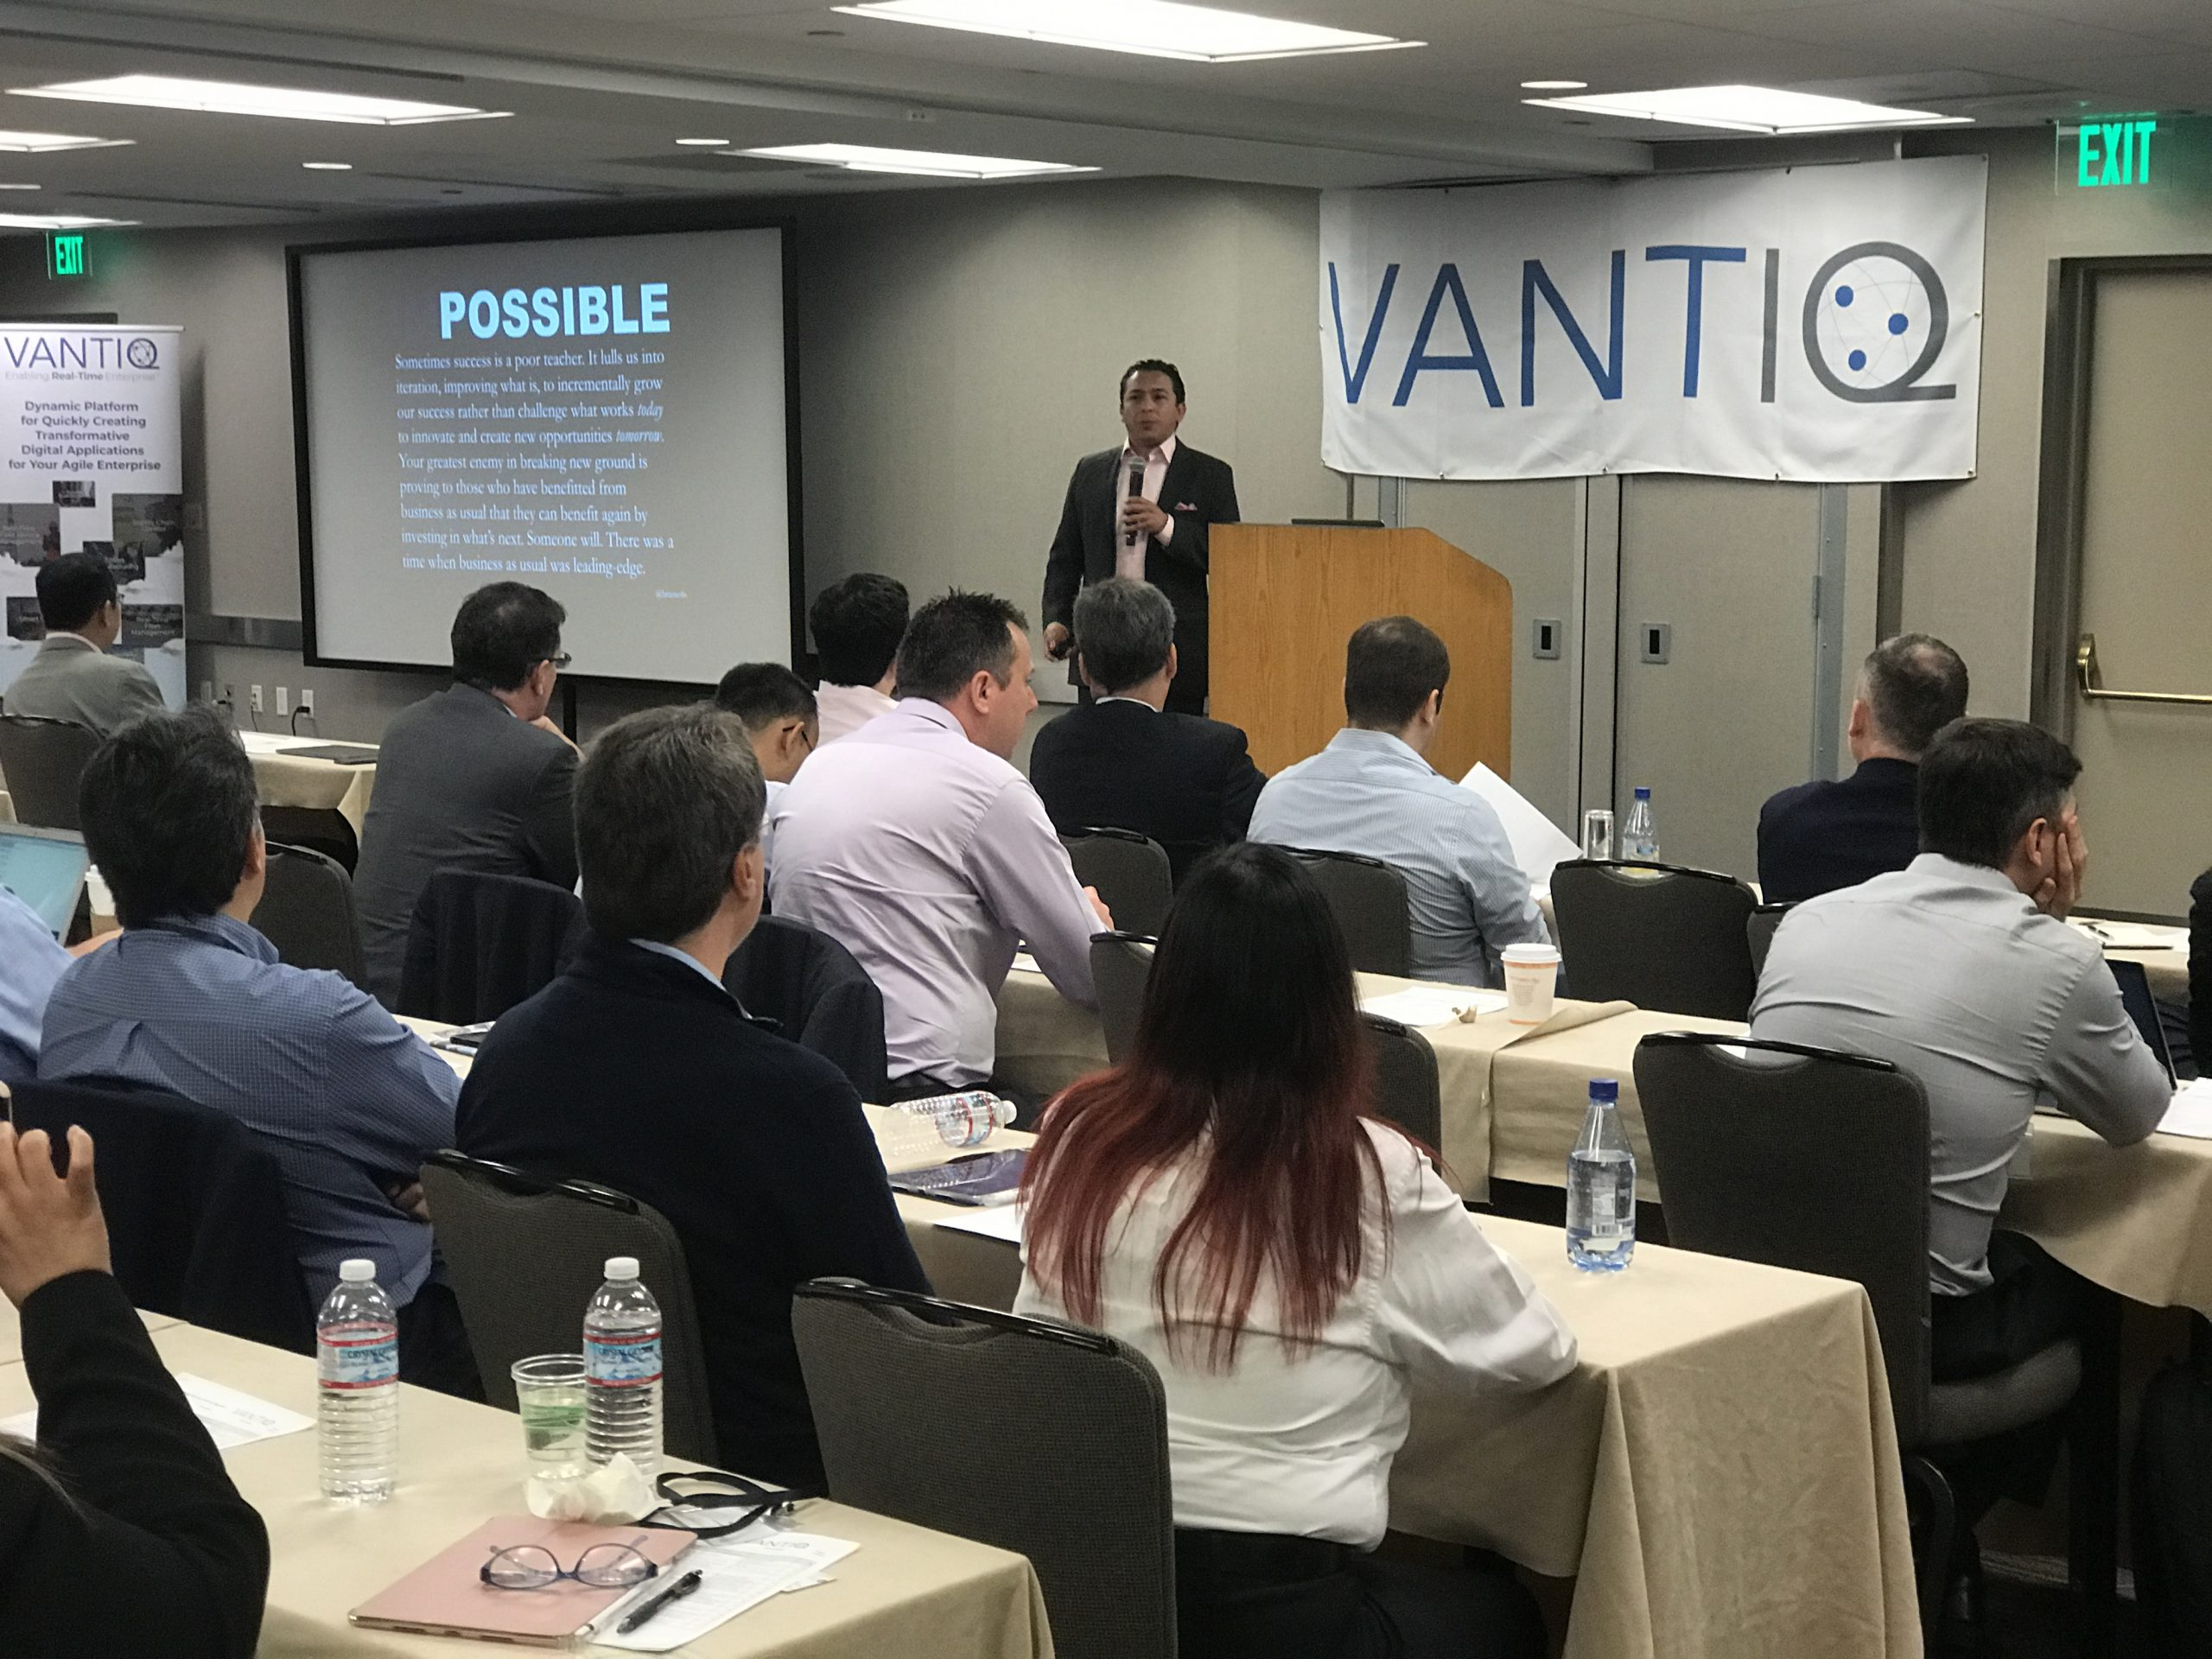 Industry Analyst Brian Solis opened a revealing discussion of how CX is critical to any digital transformation project at 2018 VANTIQ Global Partners Summit in San Francisco